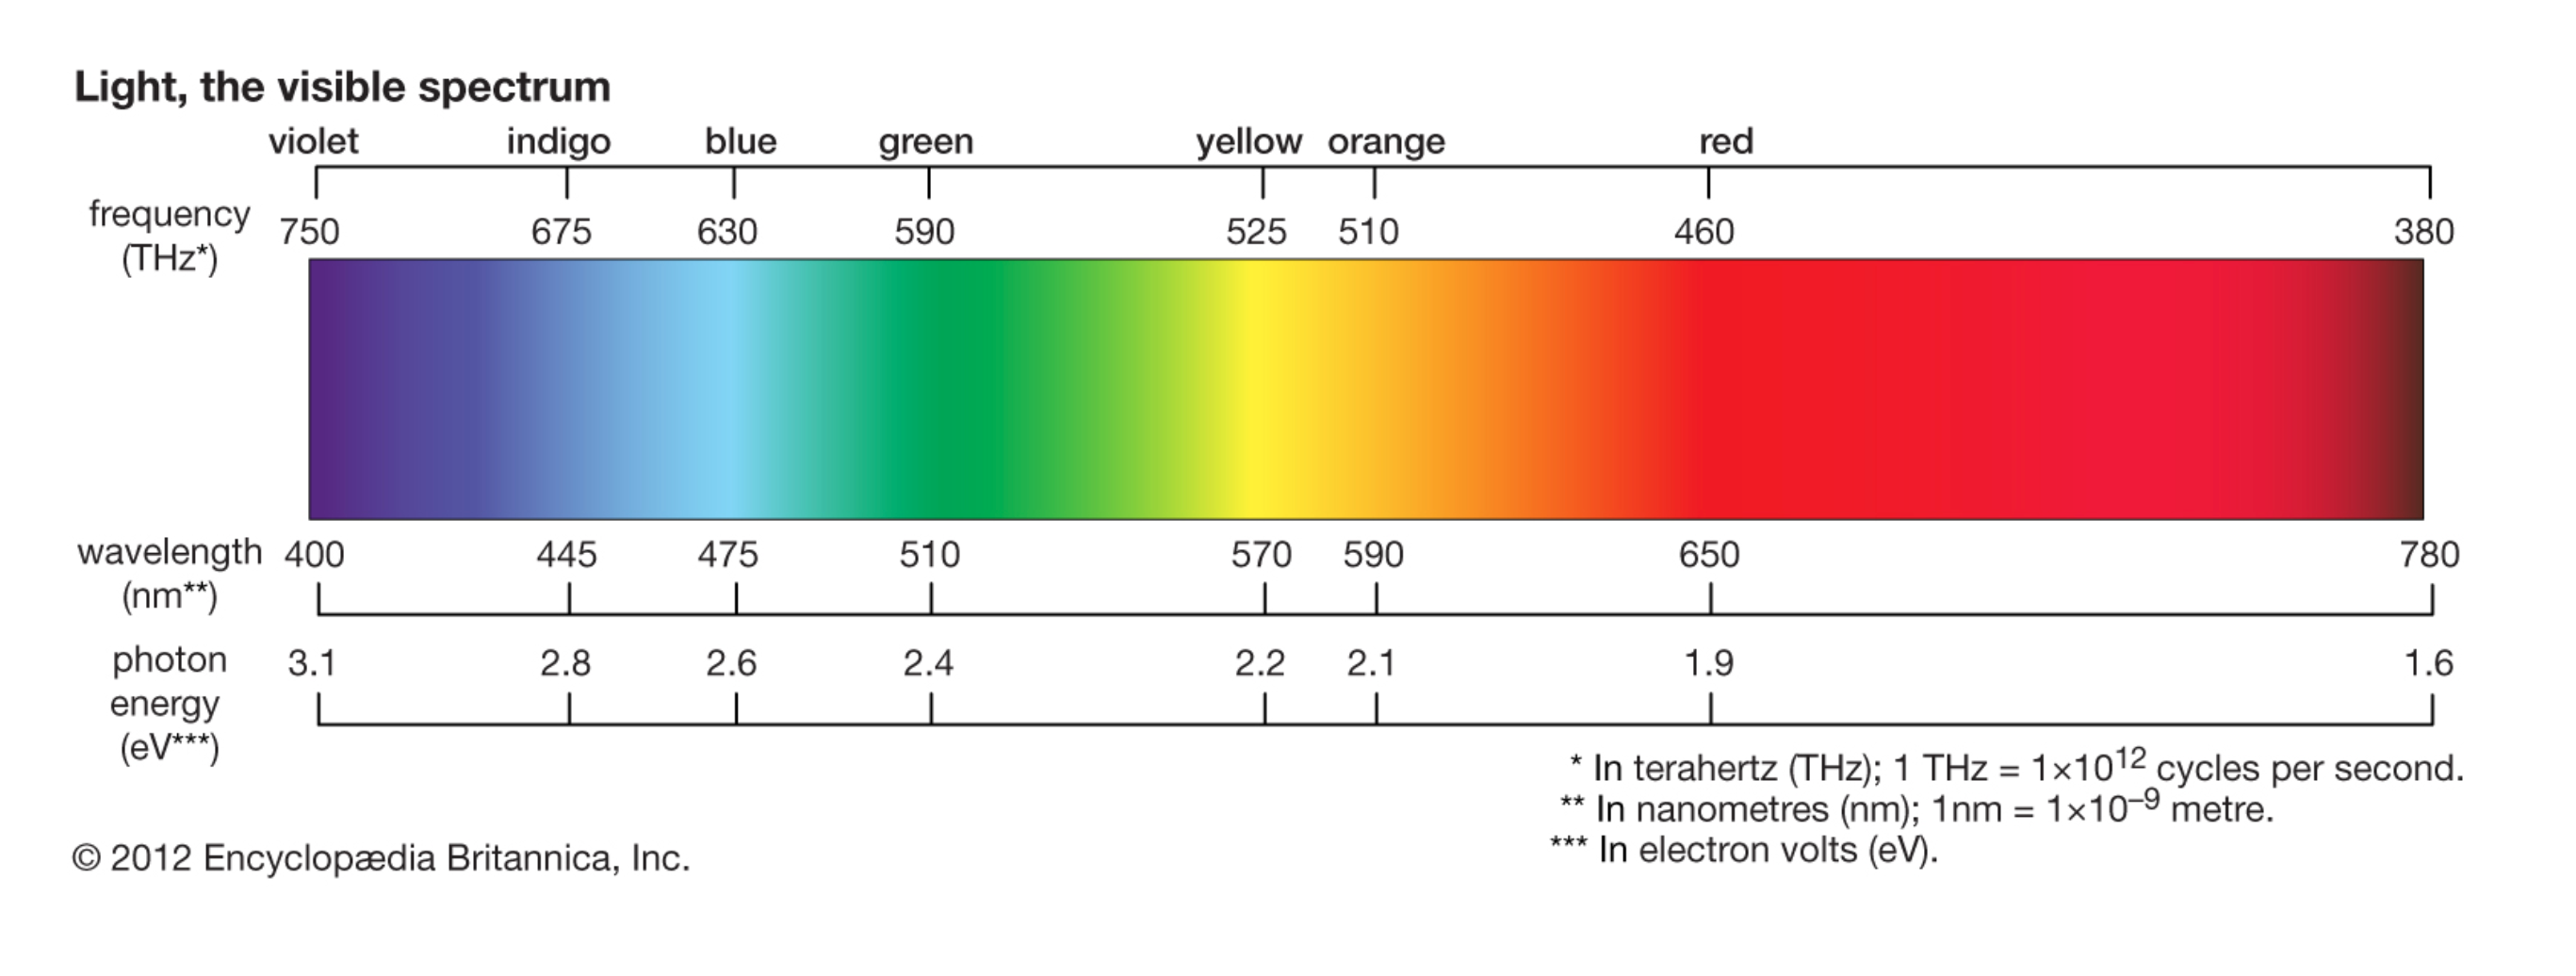 The visible wavelength range and its impact on plant growth